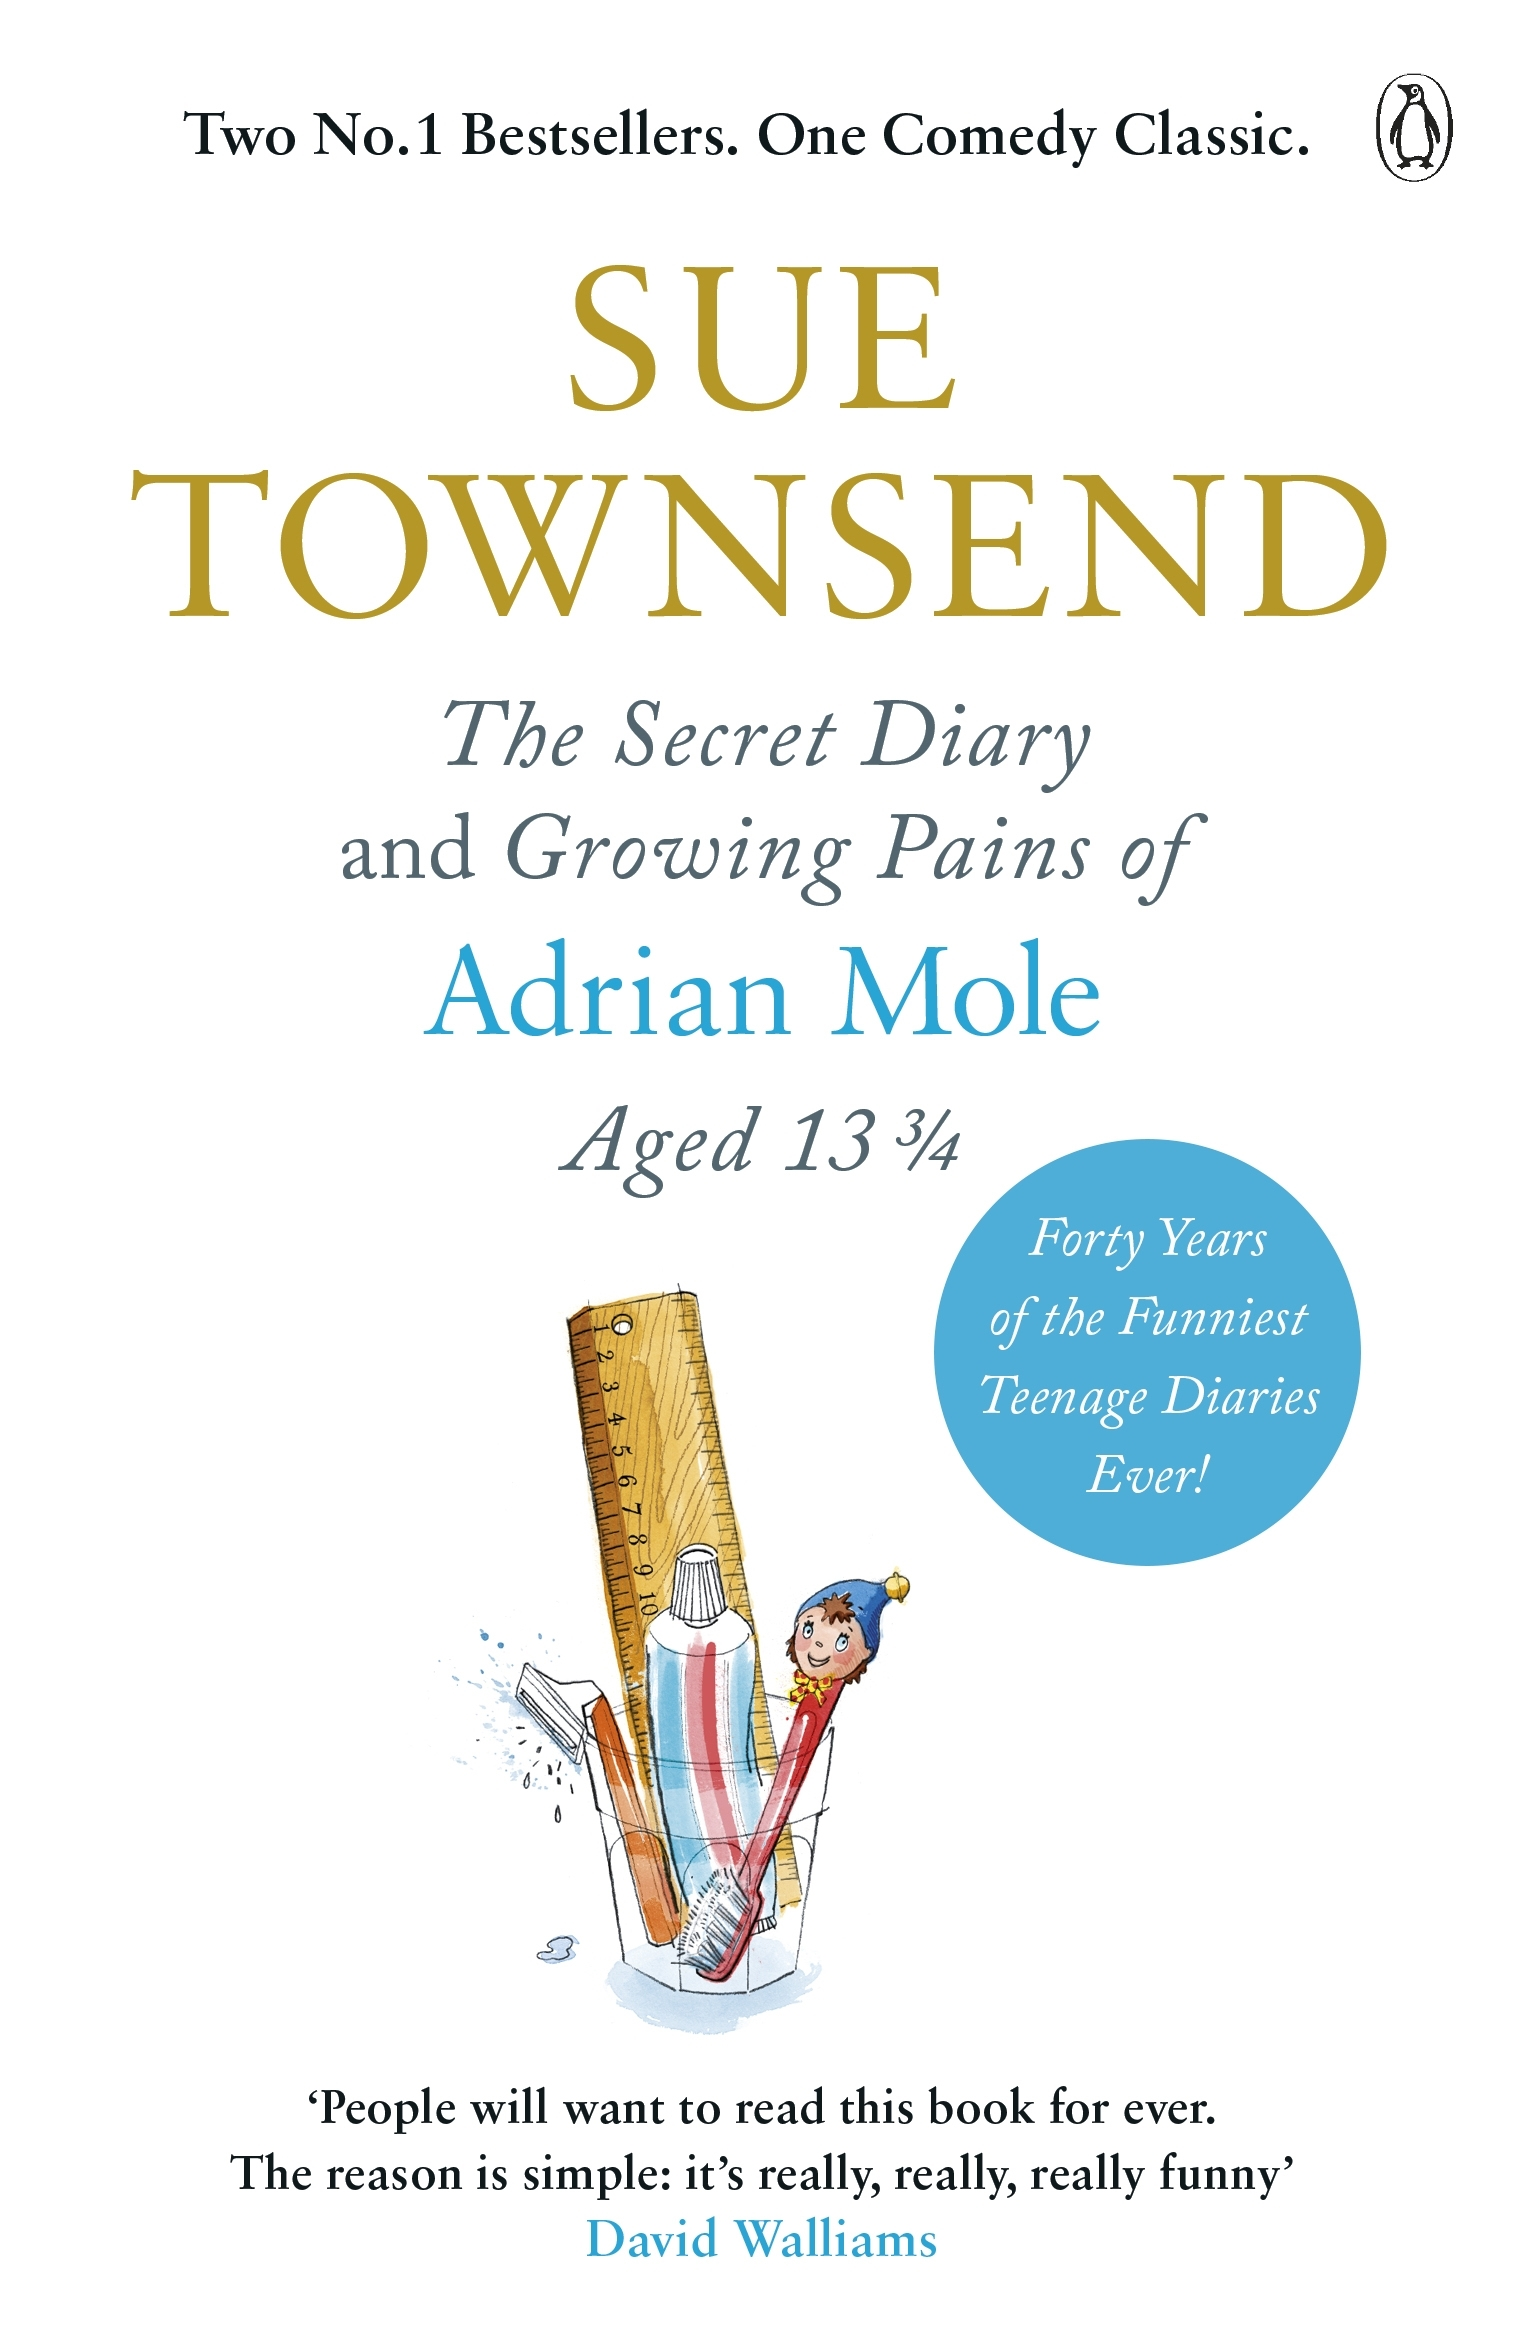 Adrian Mole Omnibus: Growing Pains & Diary